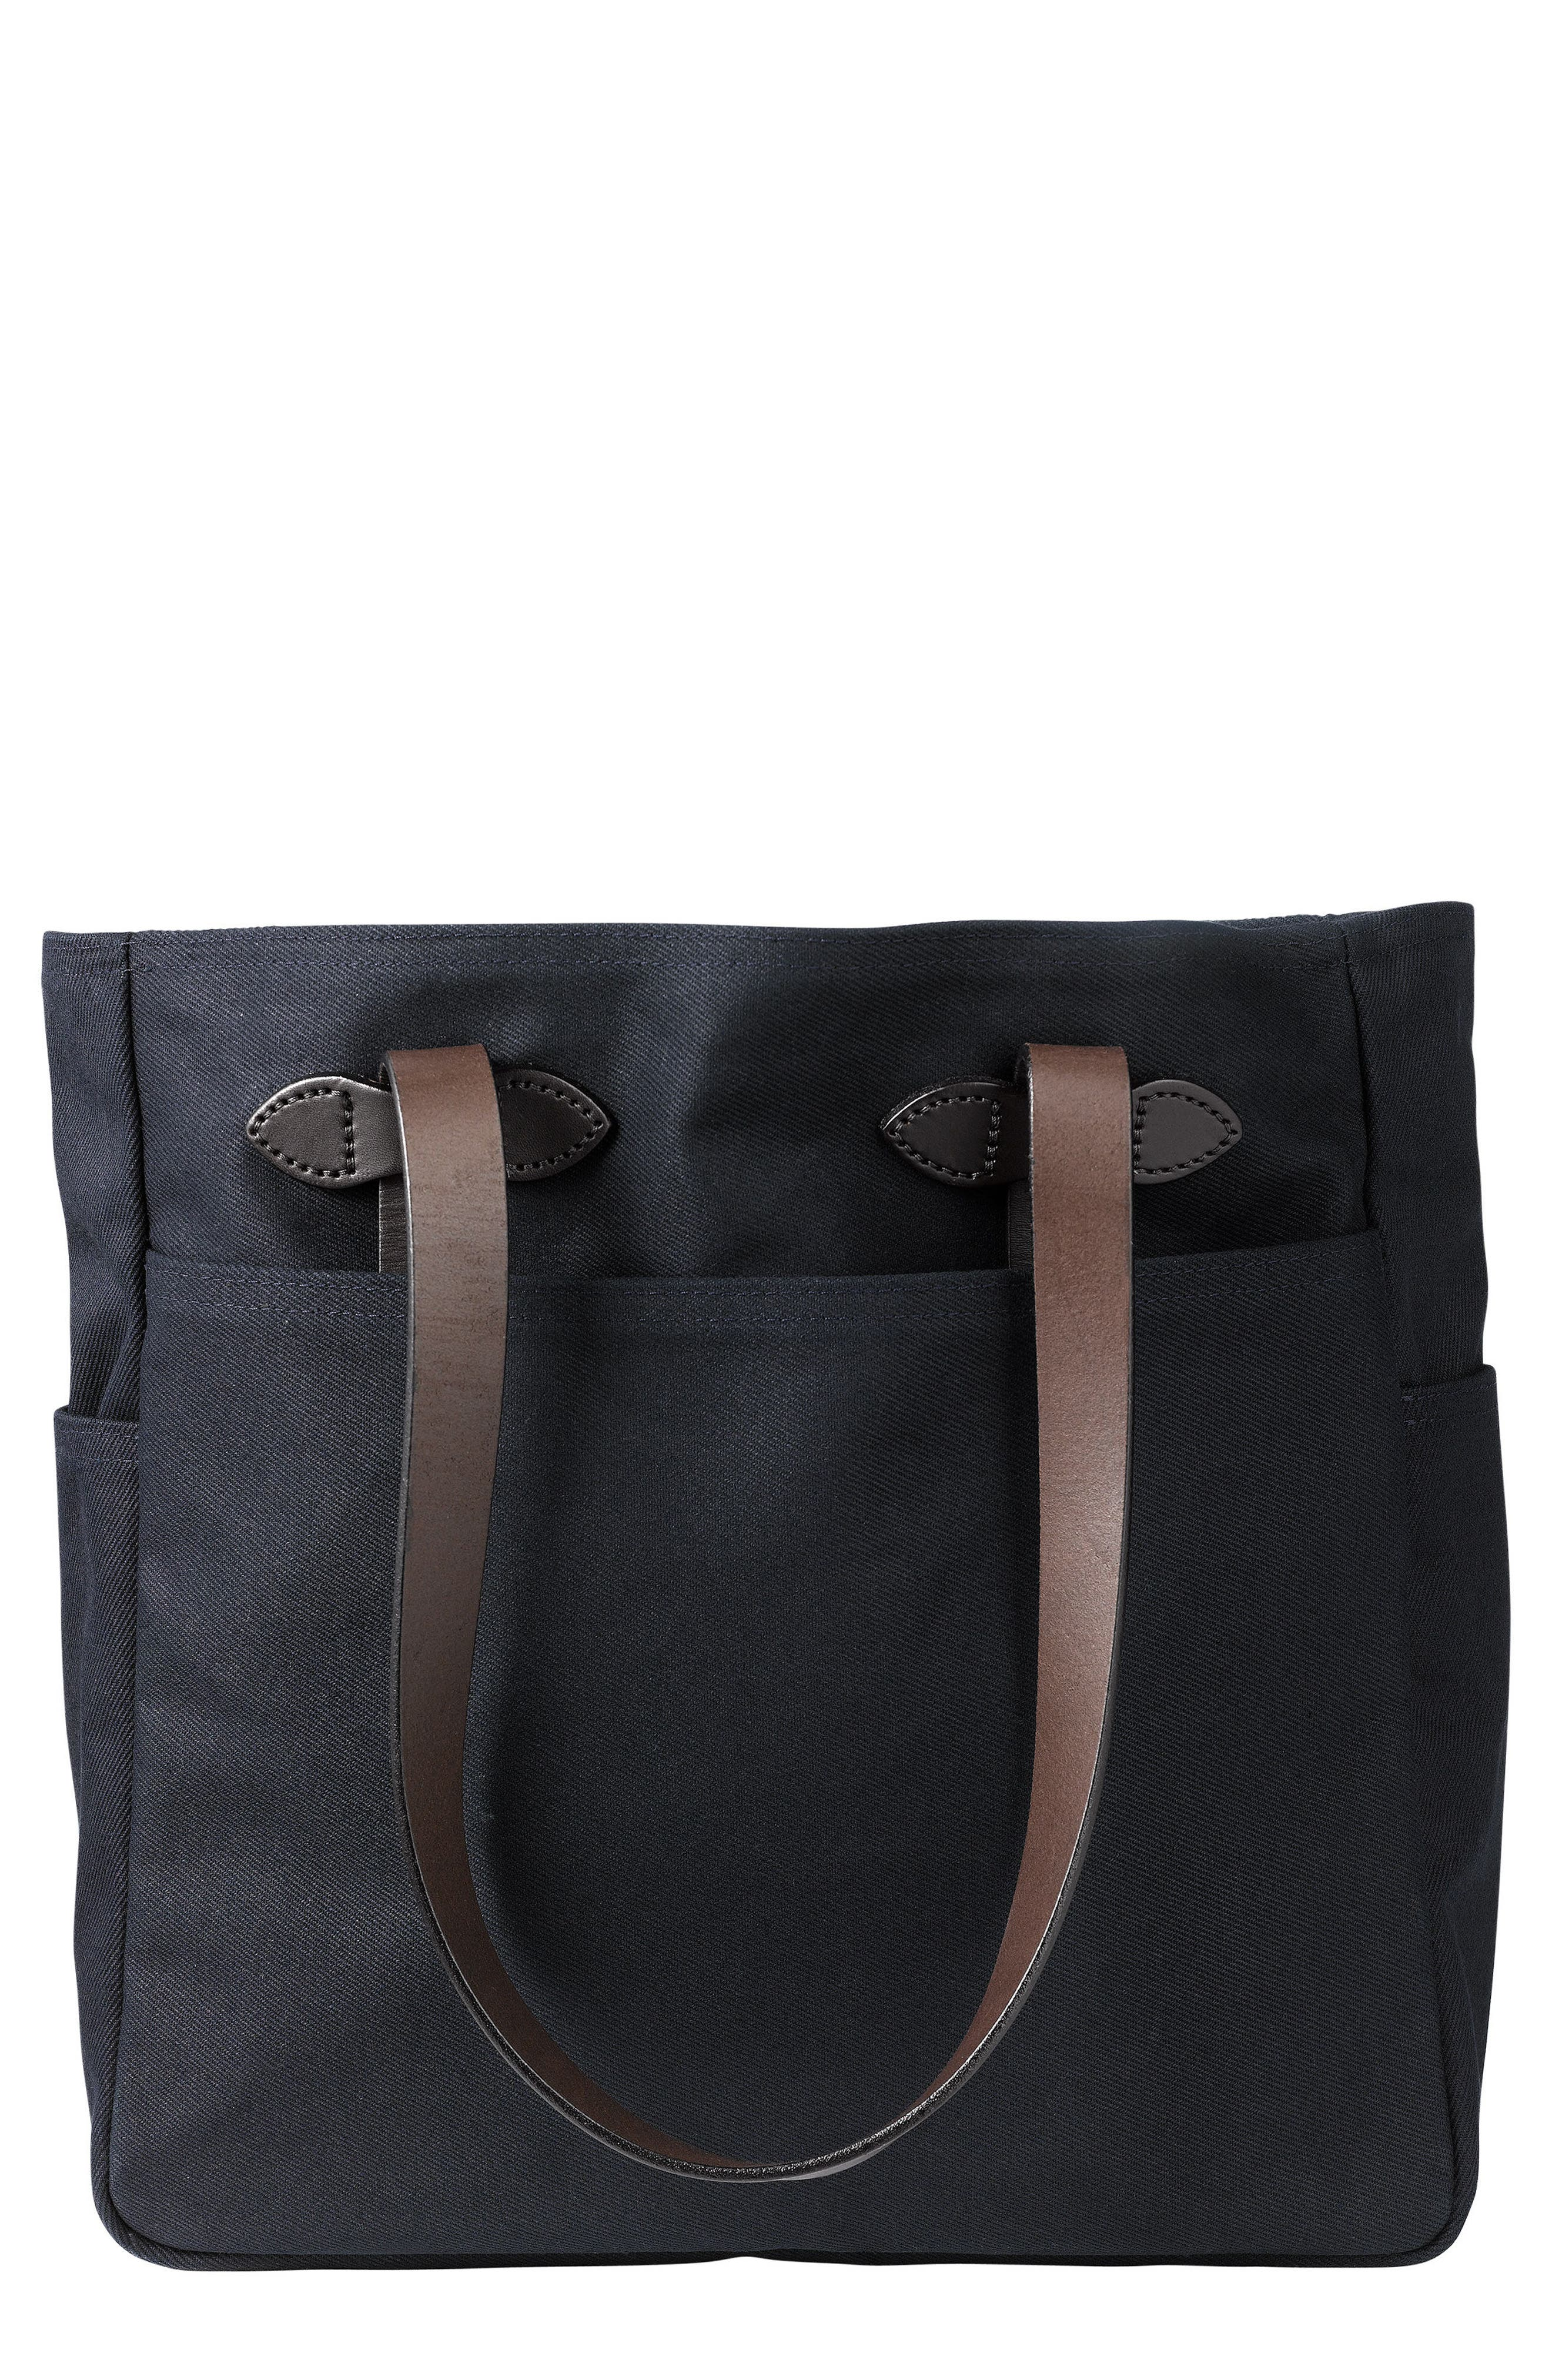 FILSON Rugged Twill Tote Bag - Blue in Navy